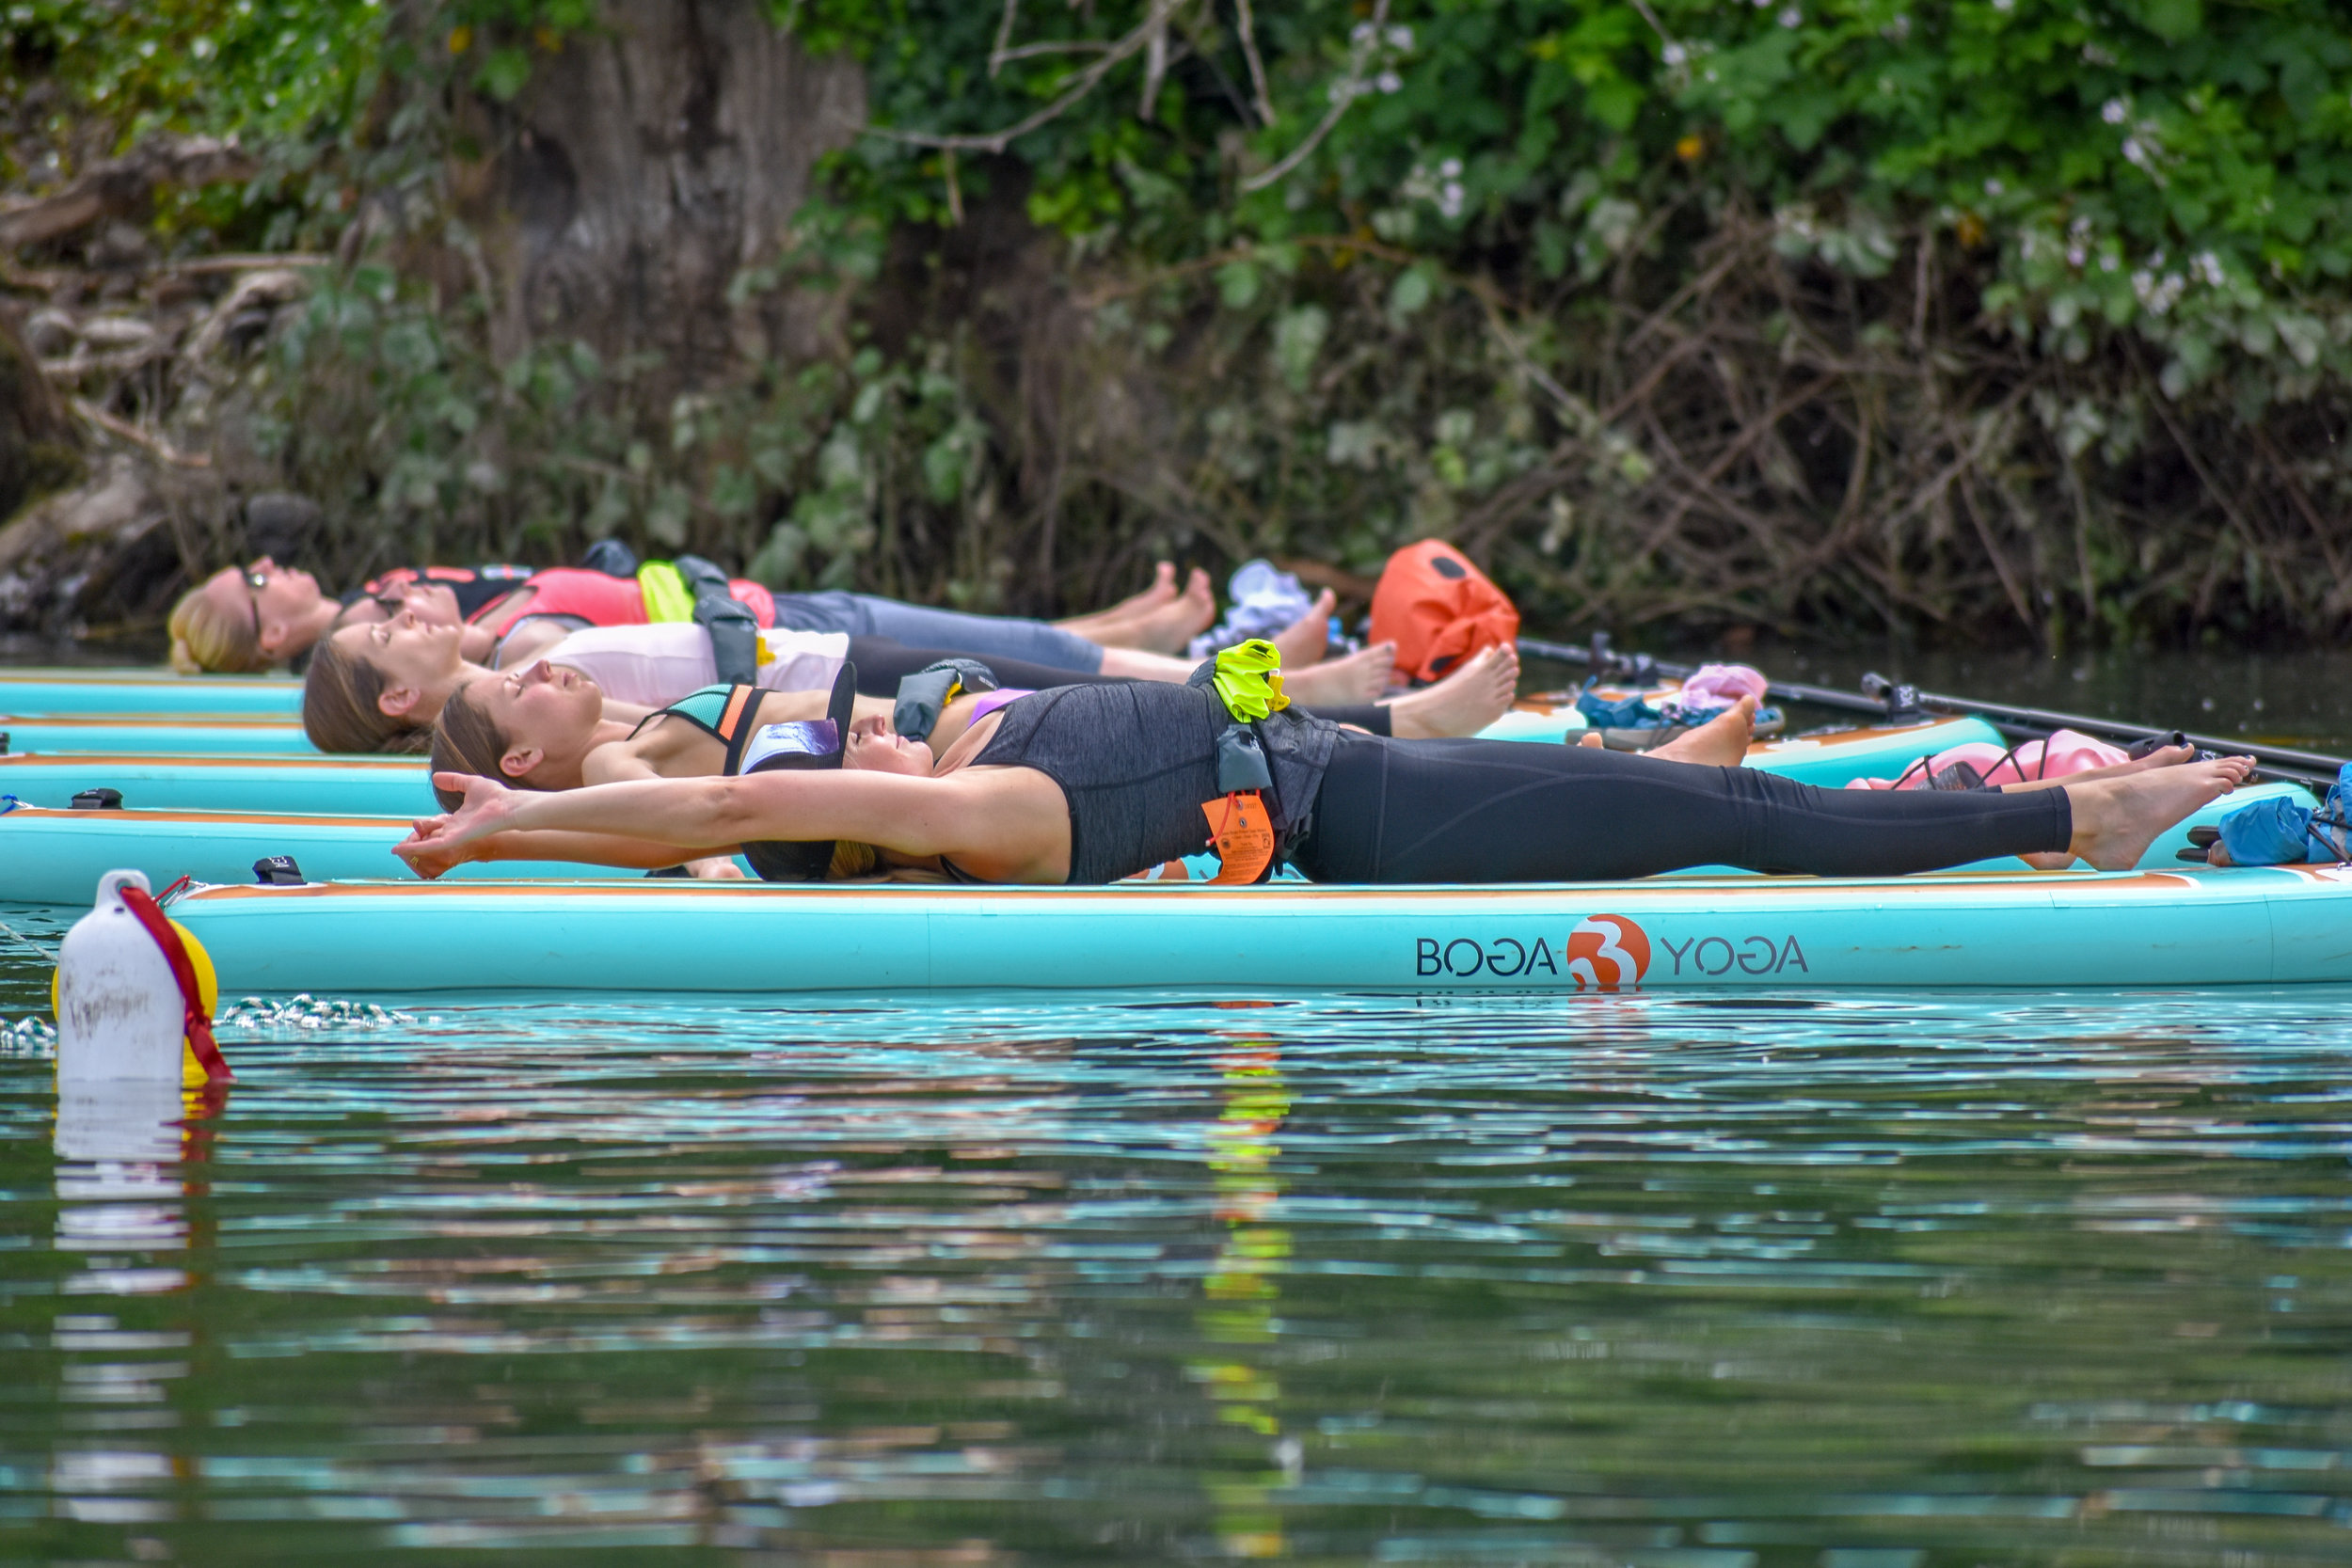 Featured on local news station KATU!  - Check out Kara Mack's feature with KATU on our owner Lauren Fields and SUP yoga!